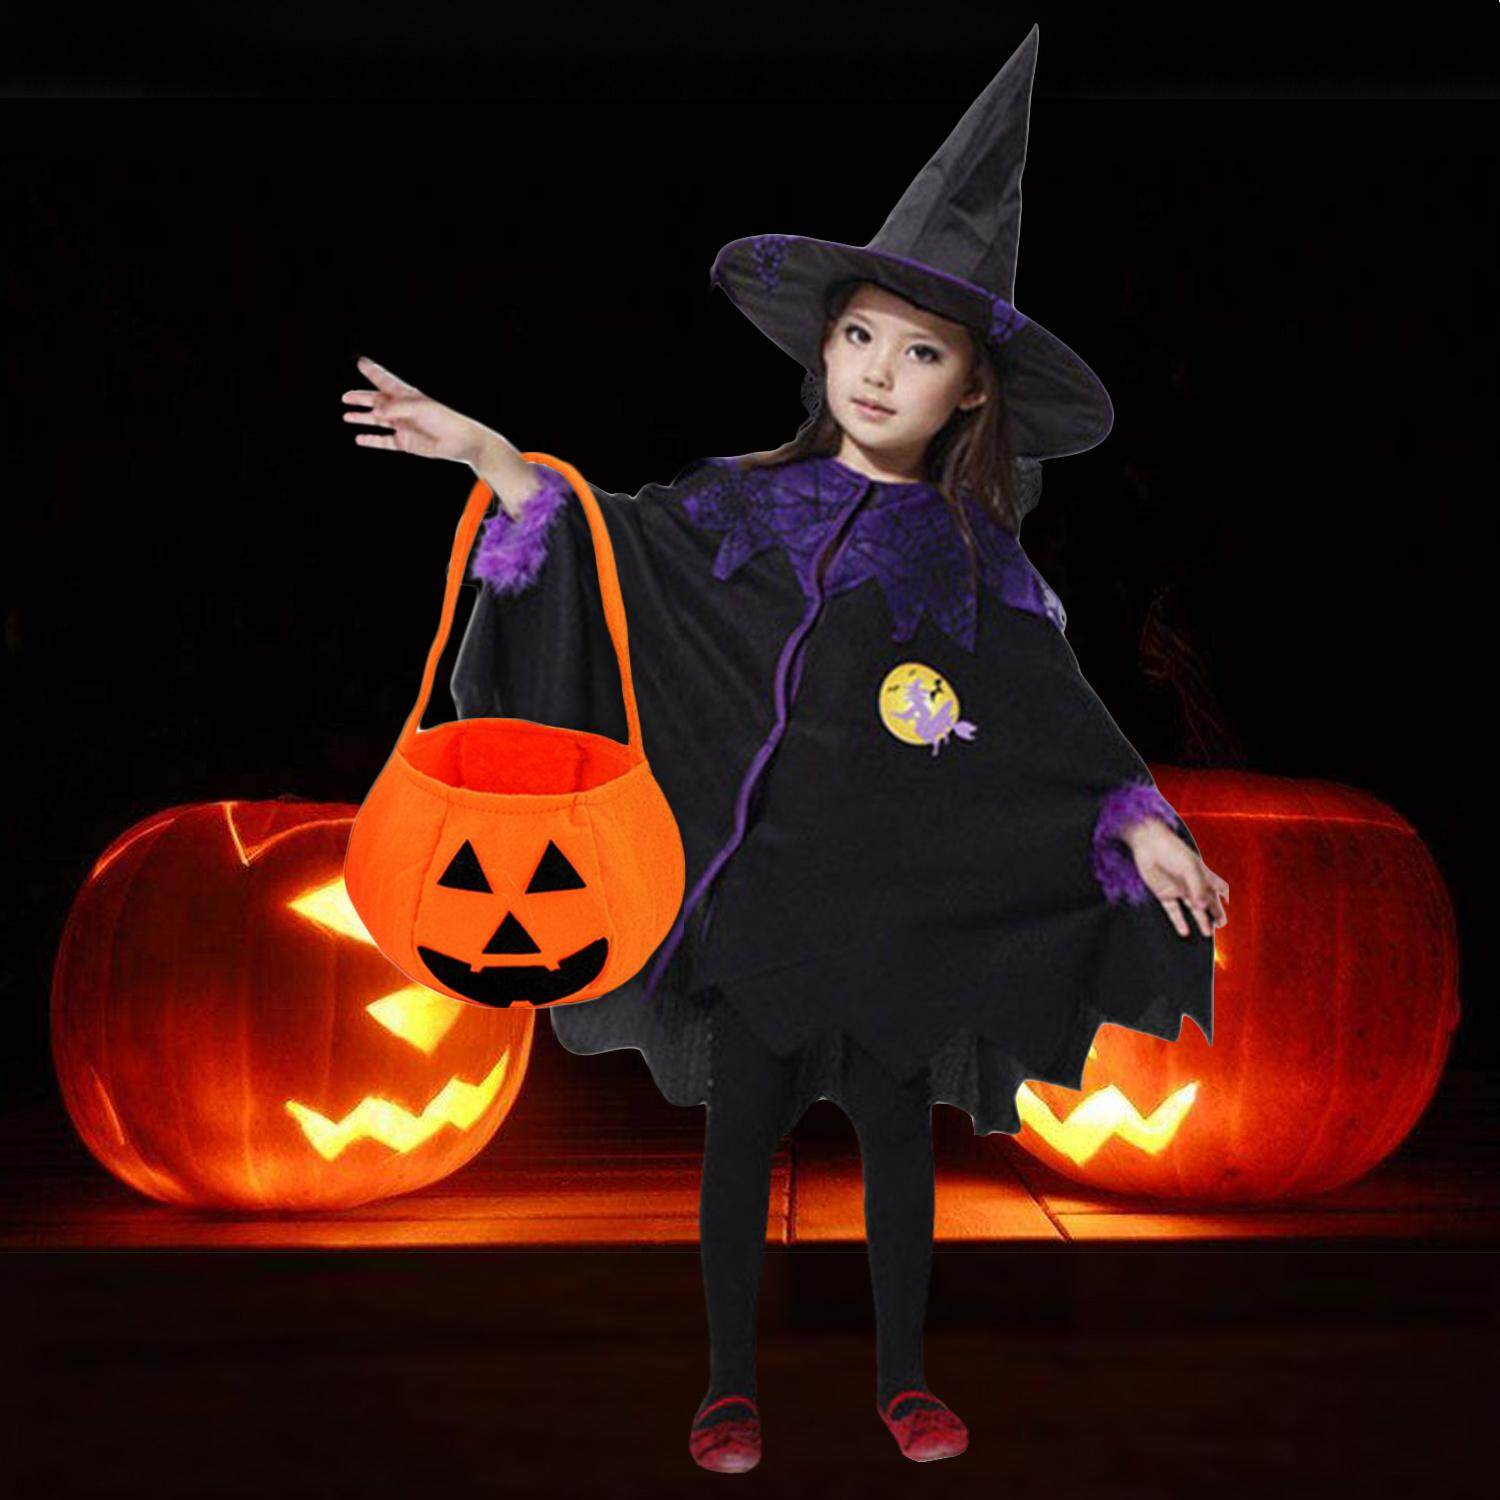 Kid Boys Girls Witch Costumes with Pumpkin Bag Cloak Cape Hat for Halloween Cosplay Role Play Stage Performance